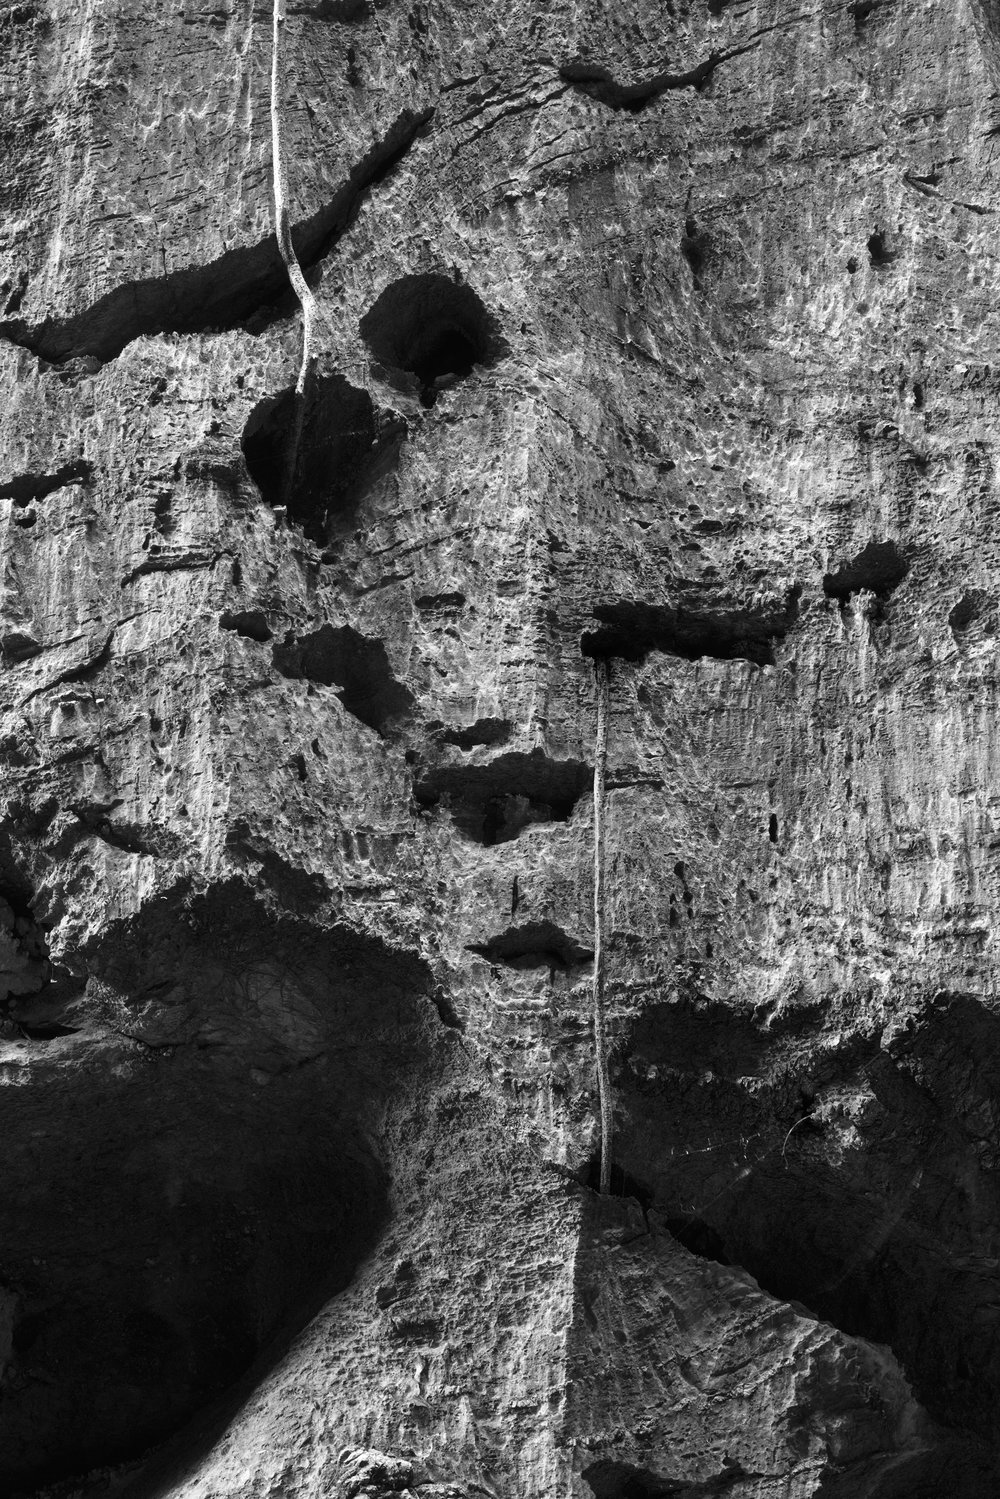 MICHAEL LUNDGREN  Roots in Guiengola, 2017  Gelatin Silver Print  Available sizes 36 x 24 in, ed. 7 + 1AP